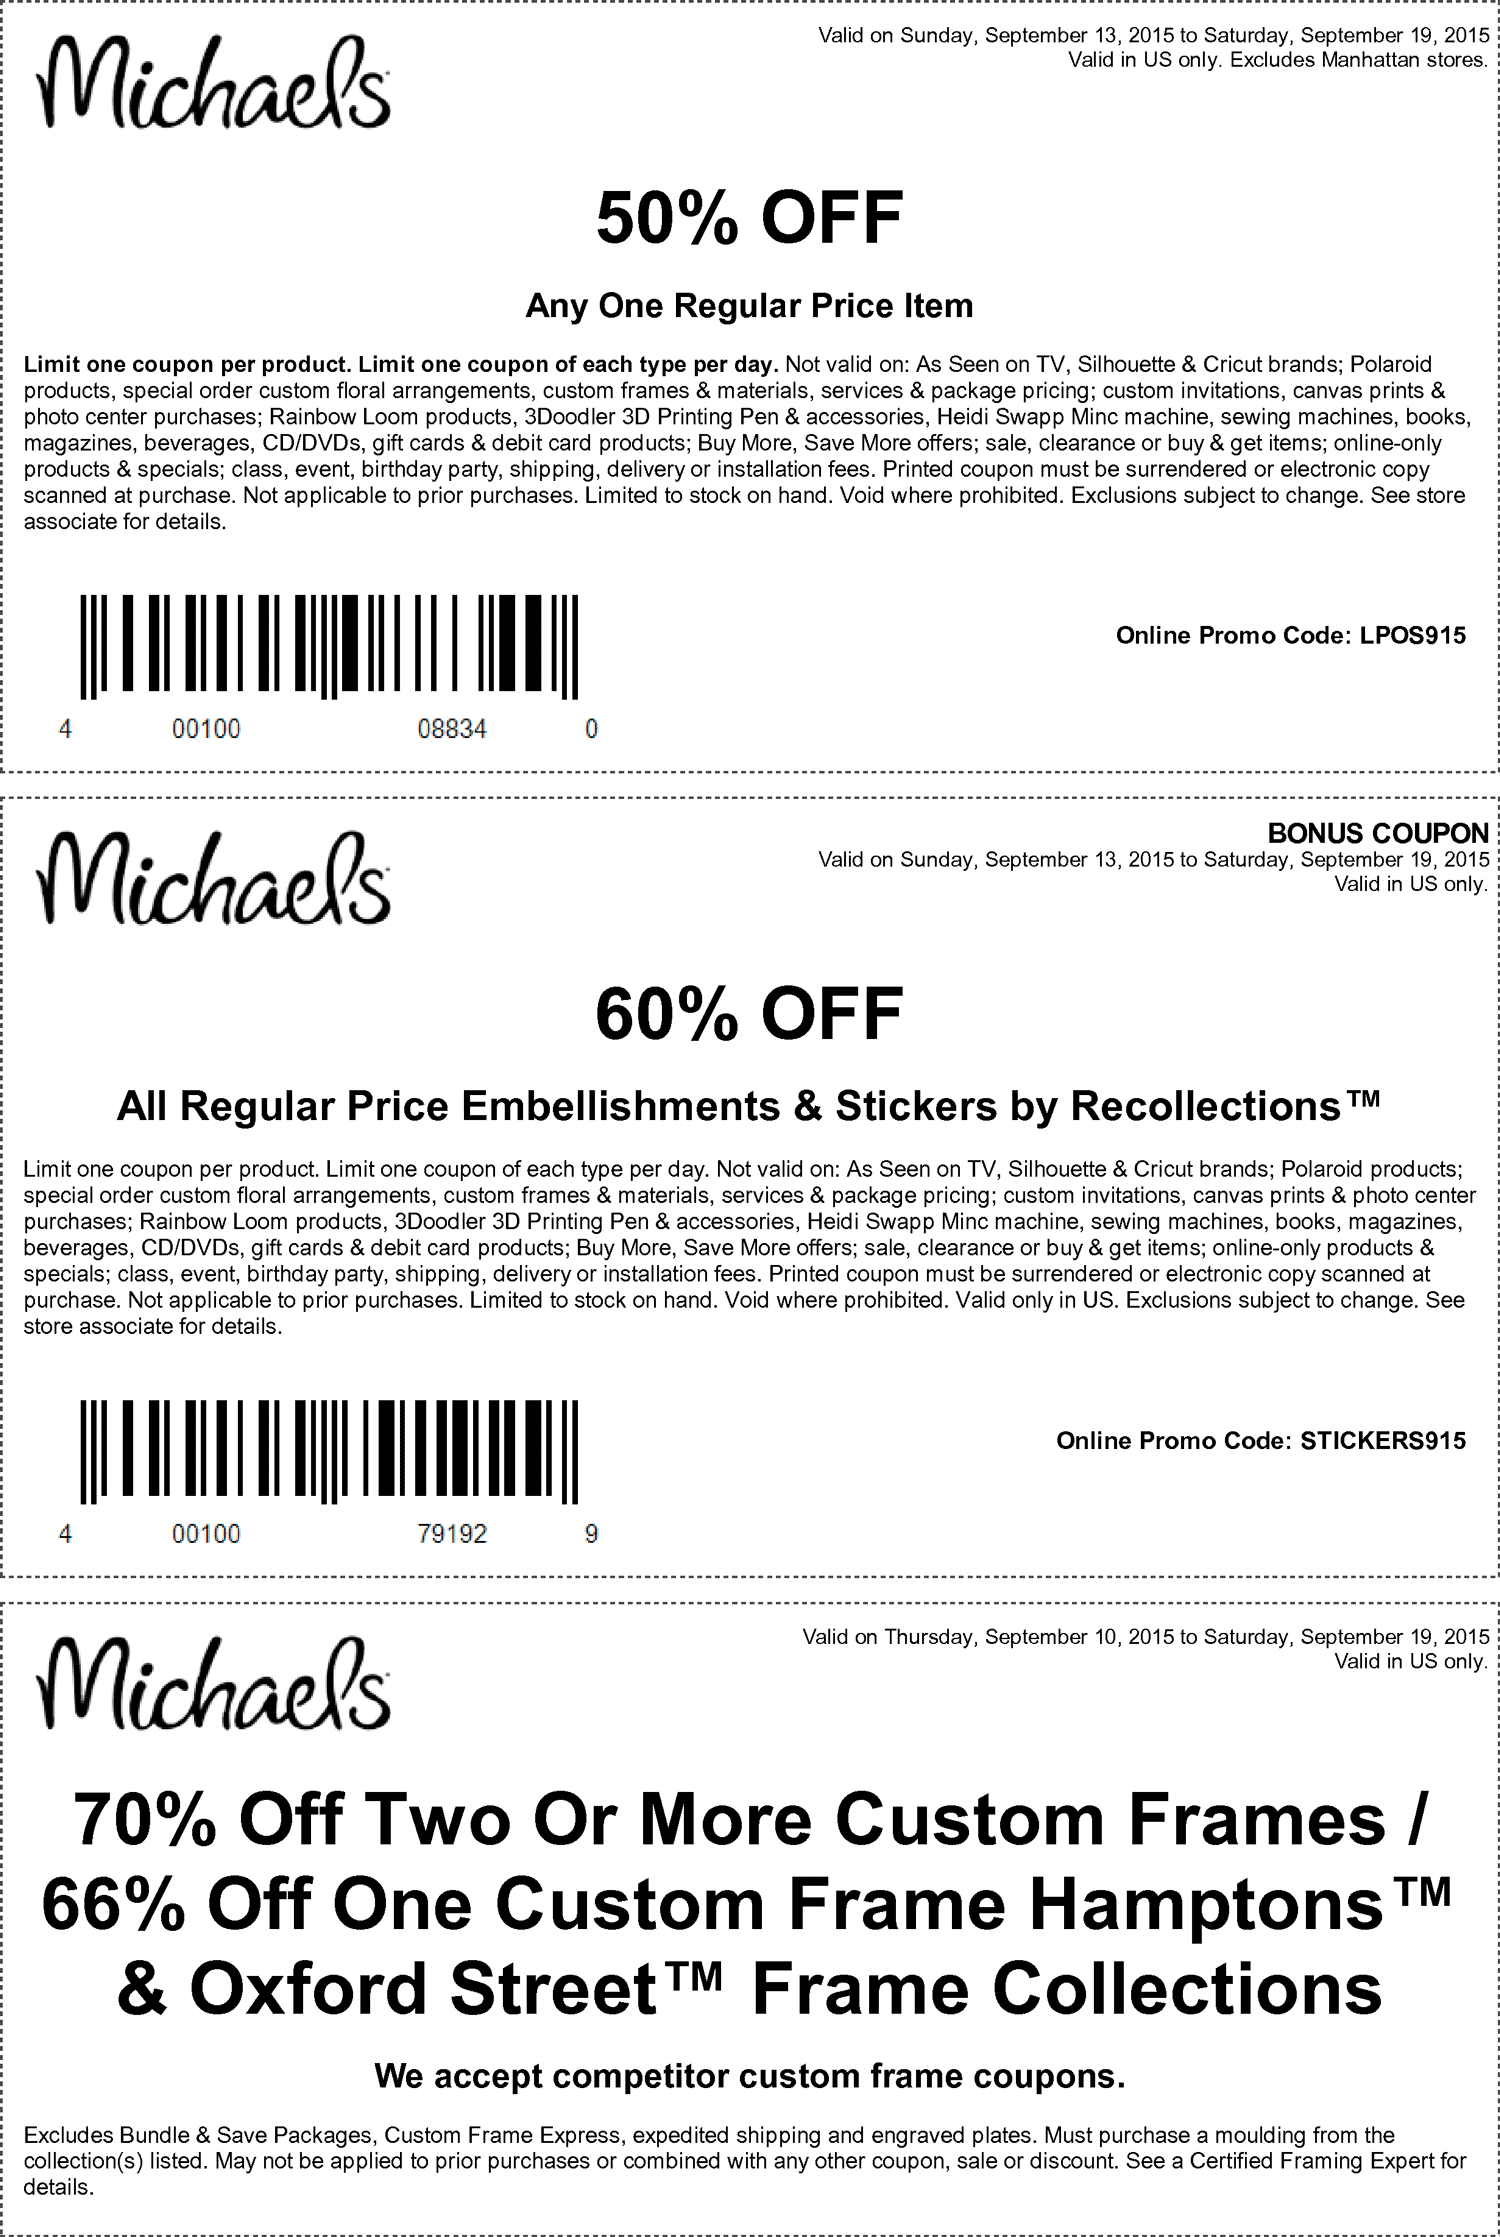 Michaels Coupon May 2017 50% off a single item at Michaels, or online via promo code LPOS915